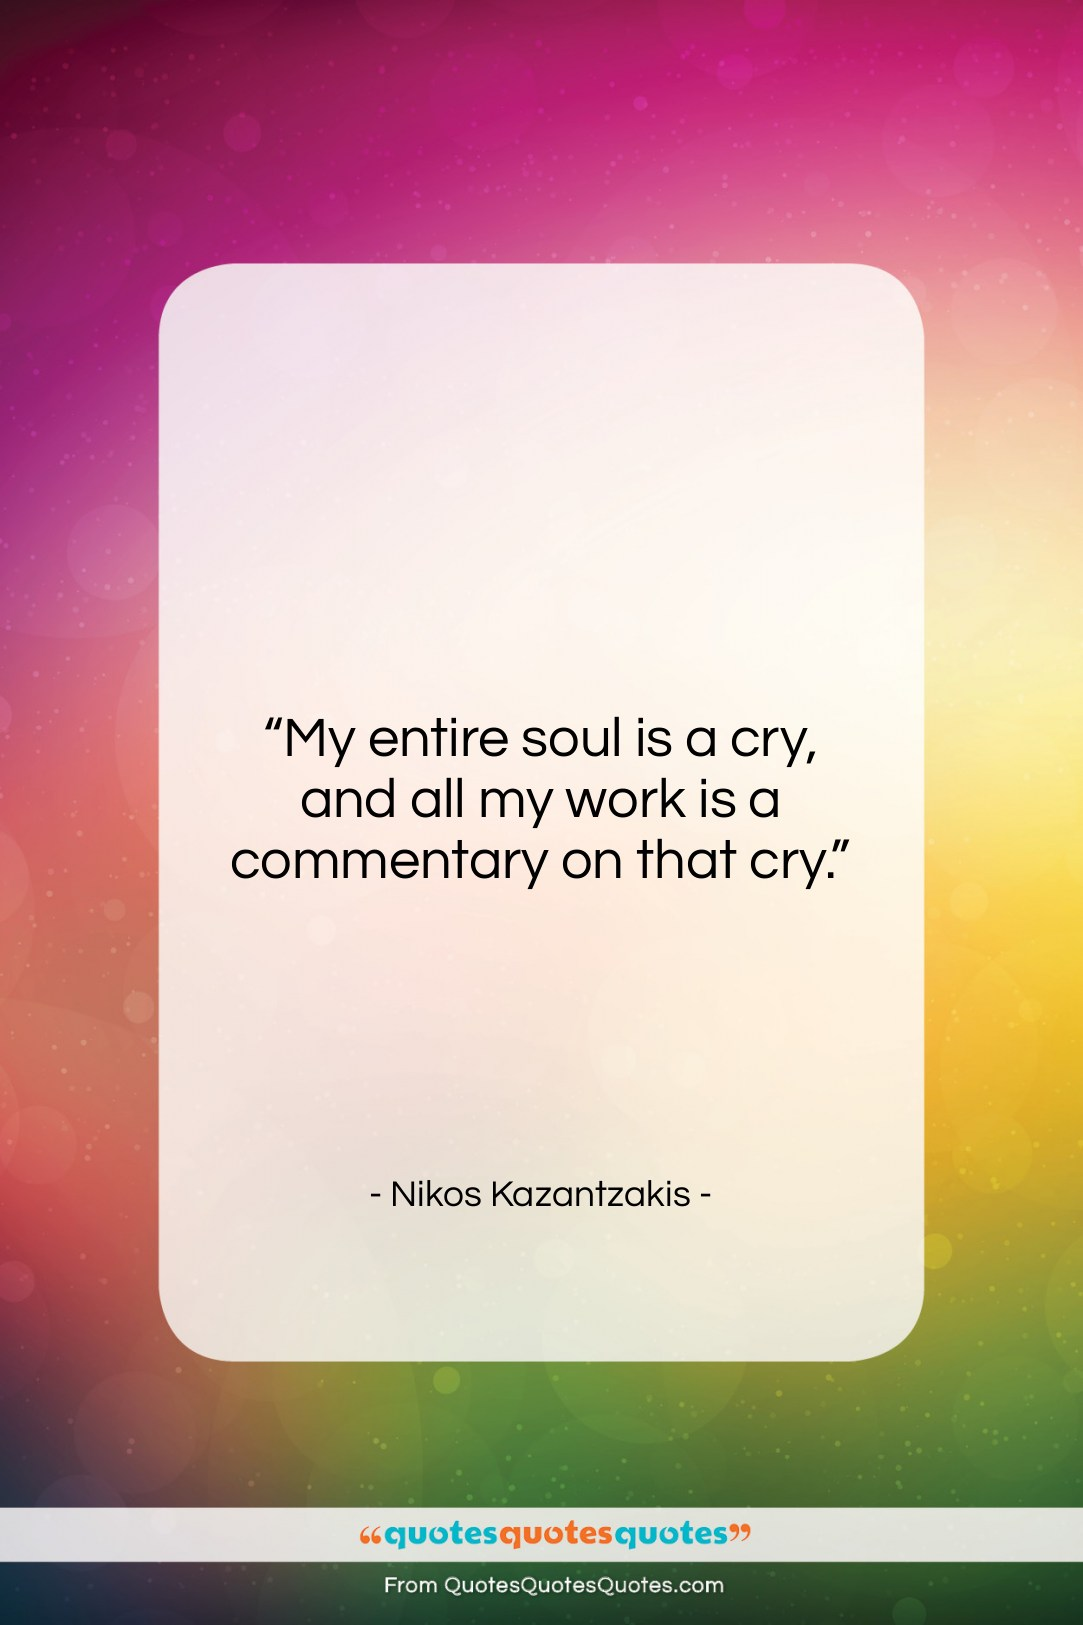 """Nikos Kazantzakis quote: """"My entire soul is a cry, and…""""- at QuotesQuotesQuotes.com"""